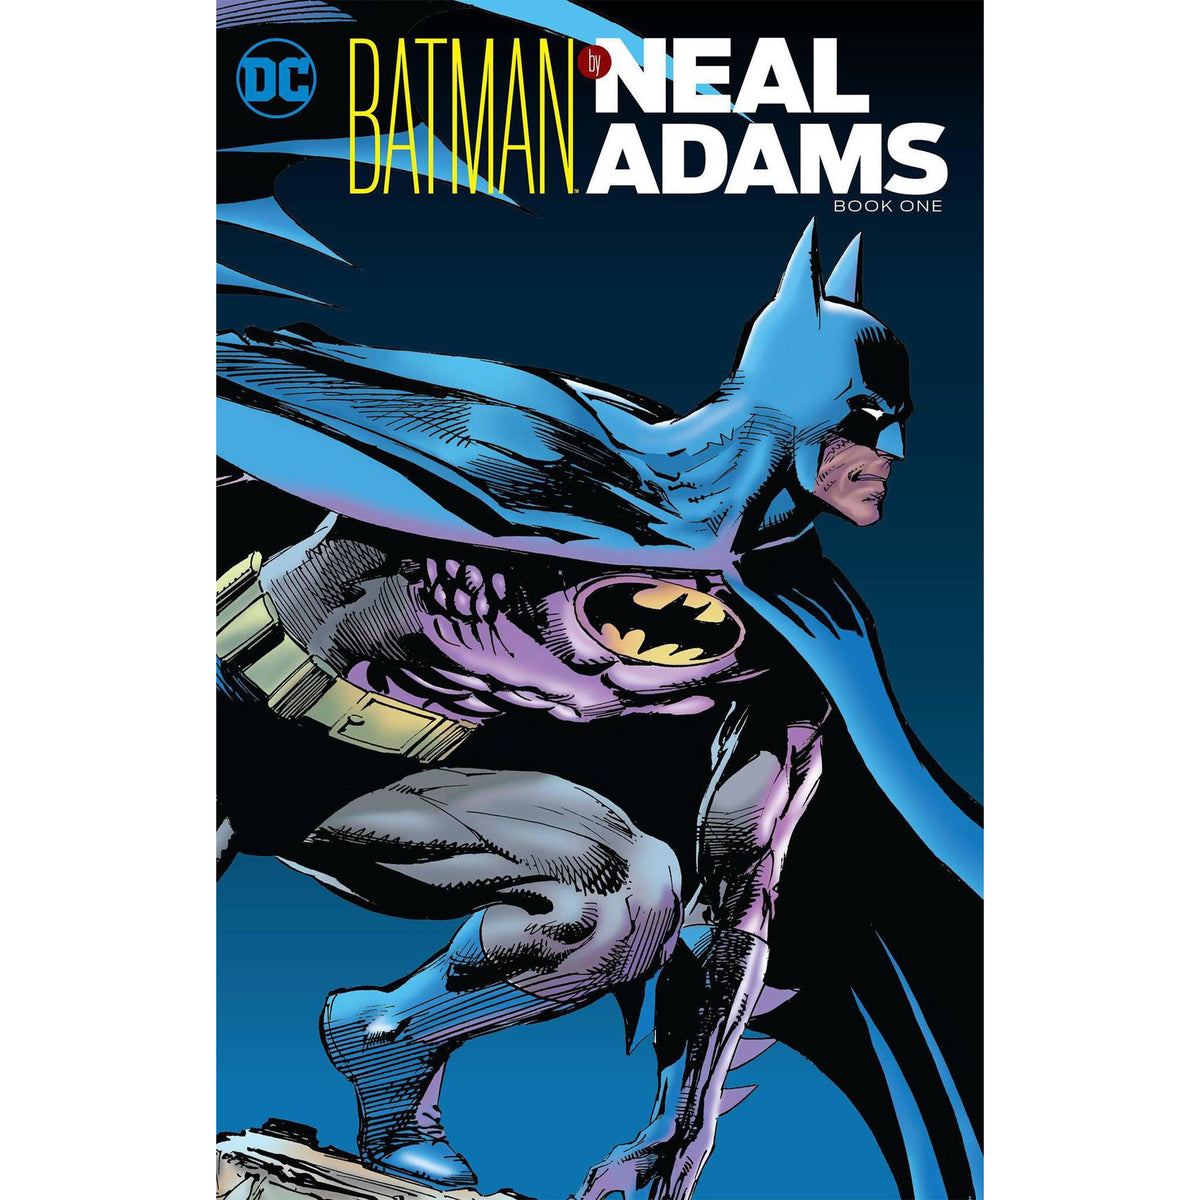 BATMAN BY NEAL ADAMS: BOOK 01